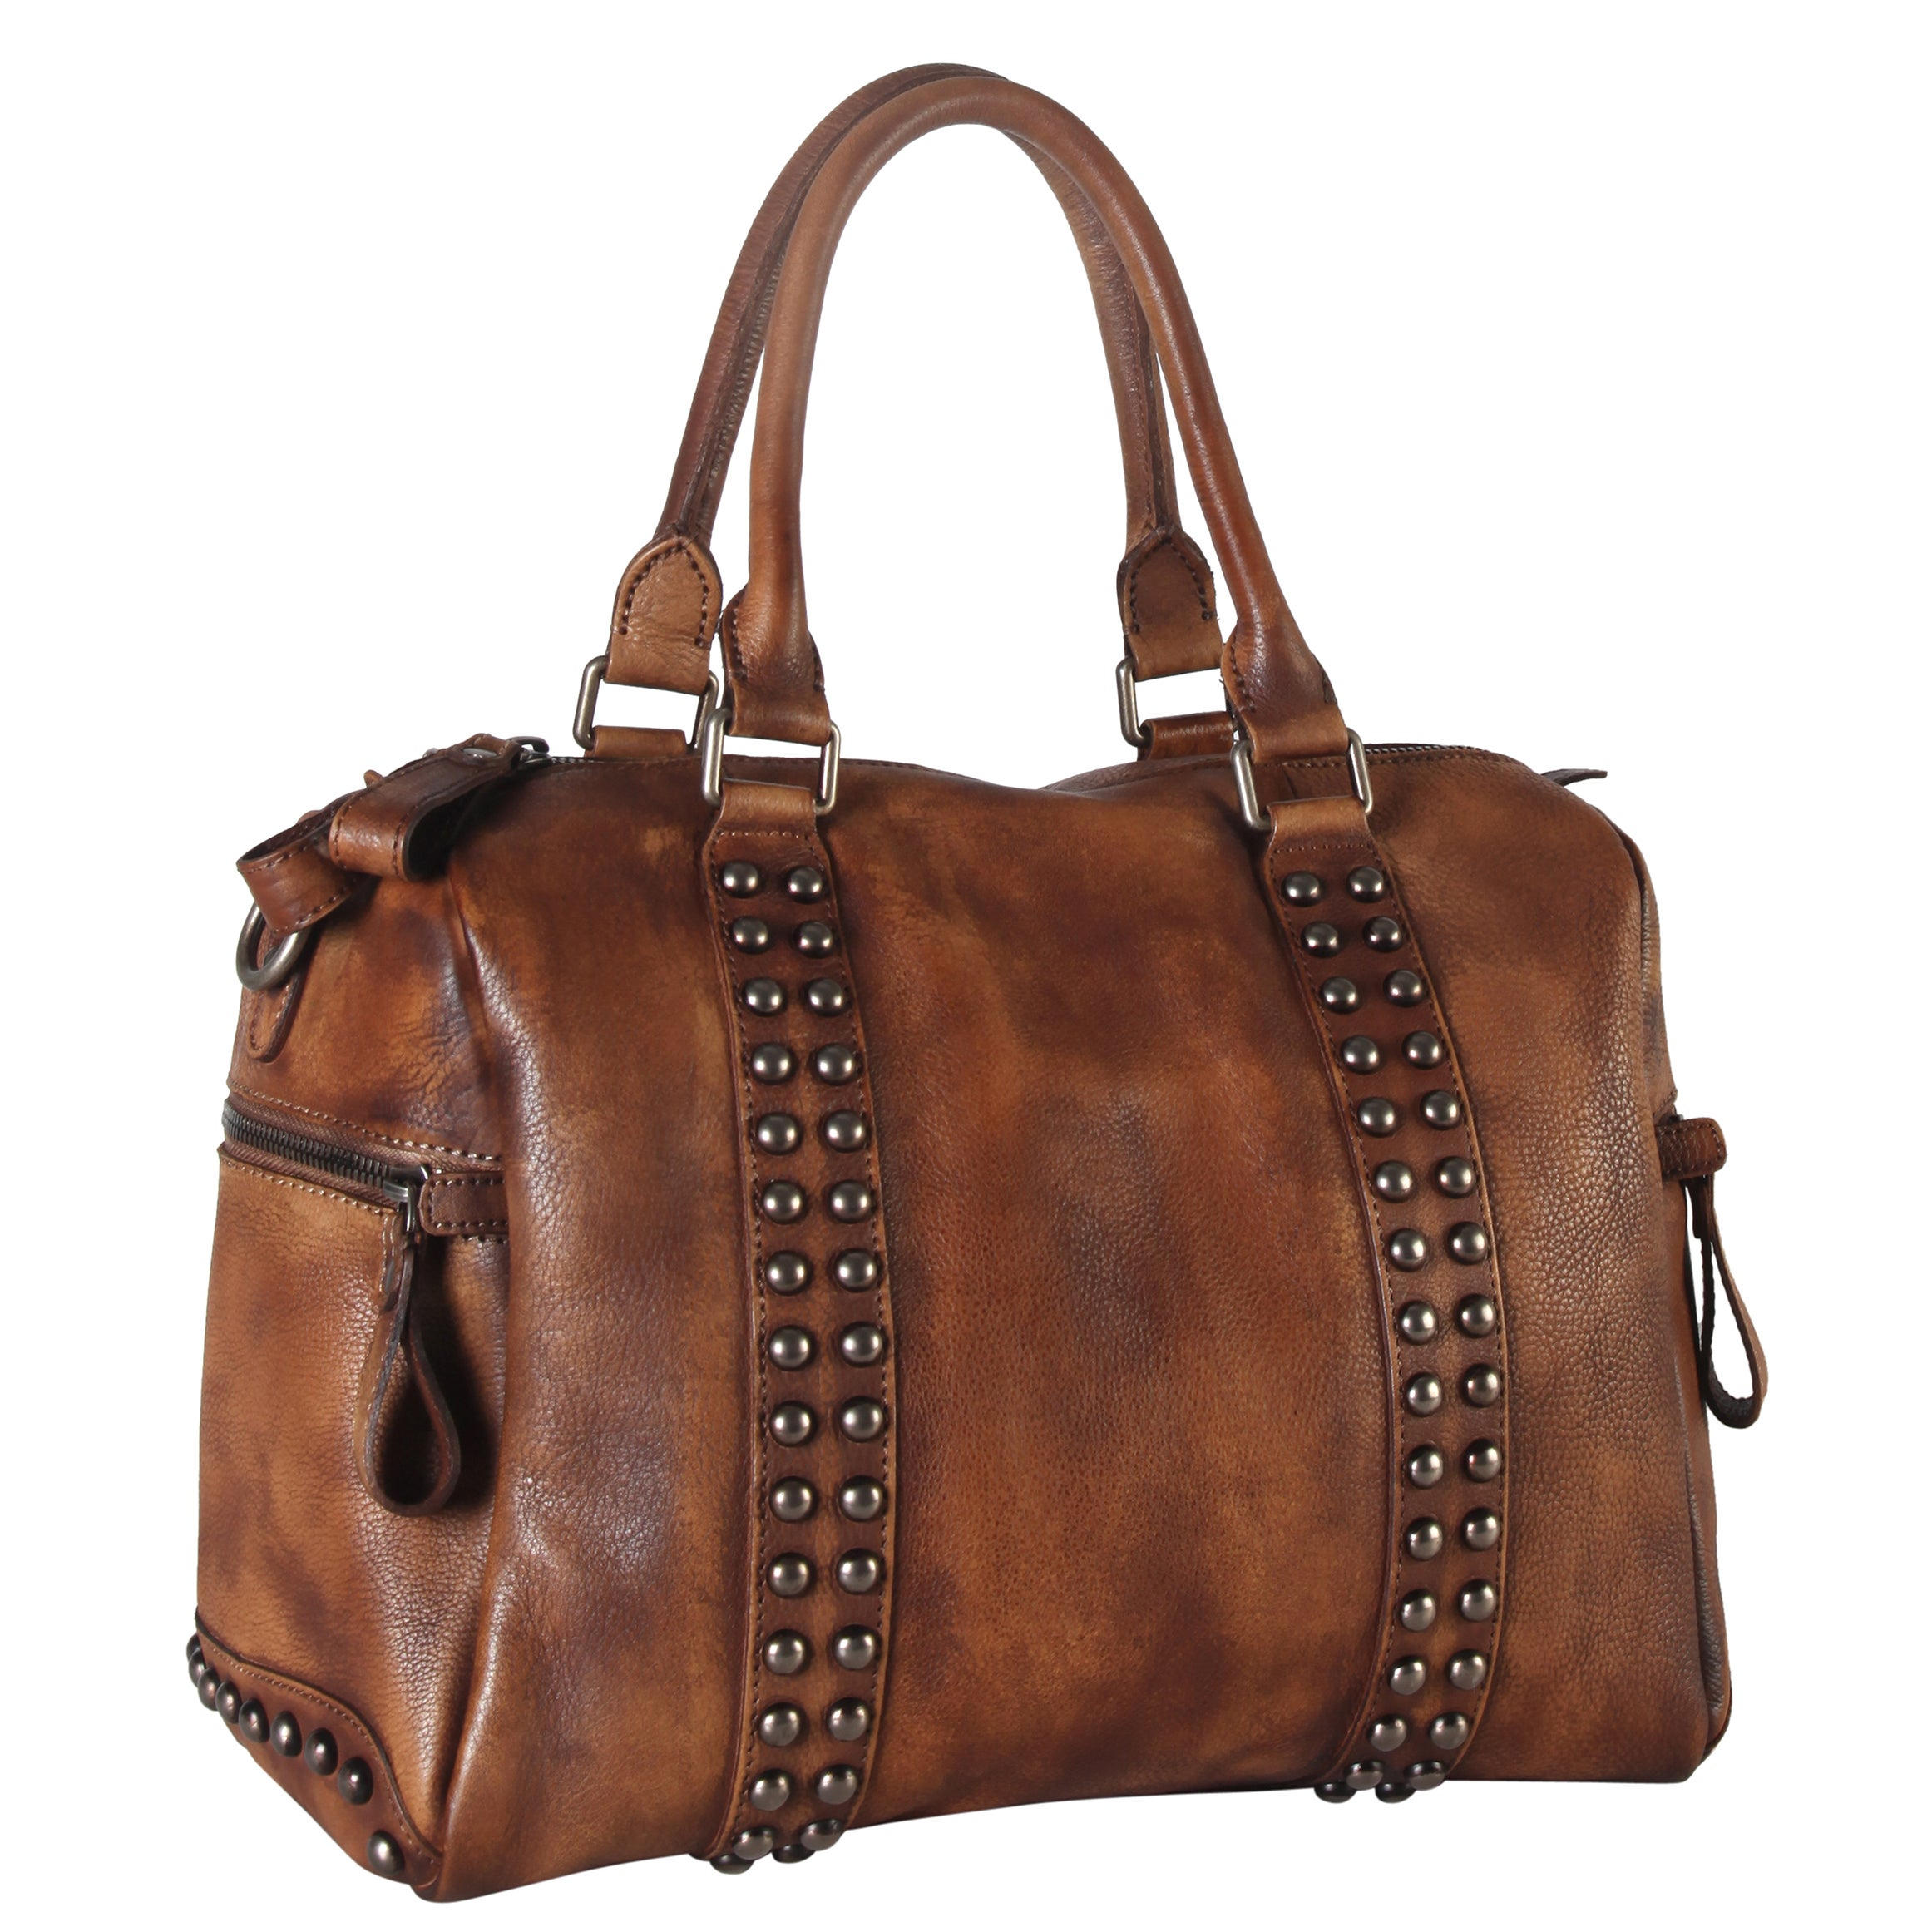 a27ade9b9b Shop Diophy Genuine Leather Medium Studded Doctor-style Tote Bag - Free  Shipping Today - Overstock - 13371174